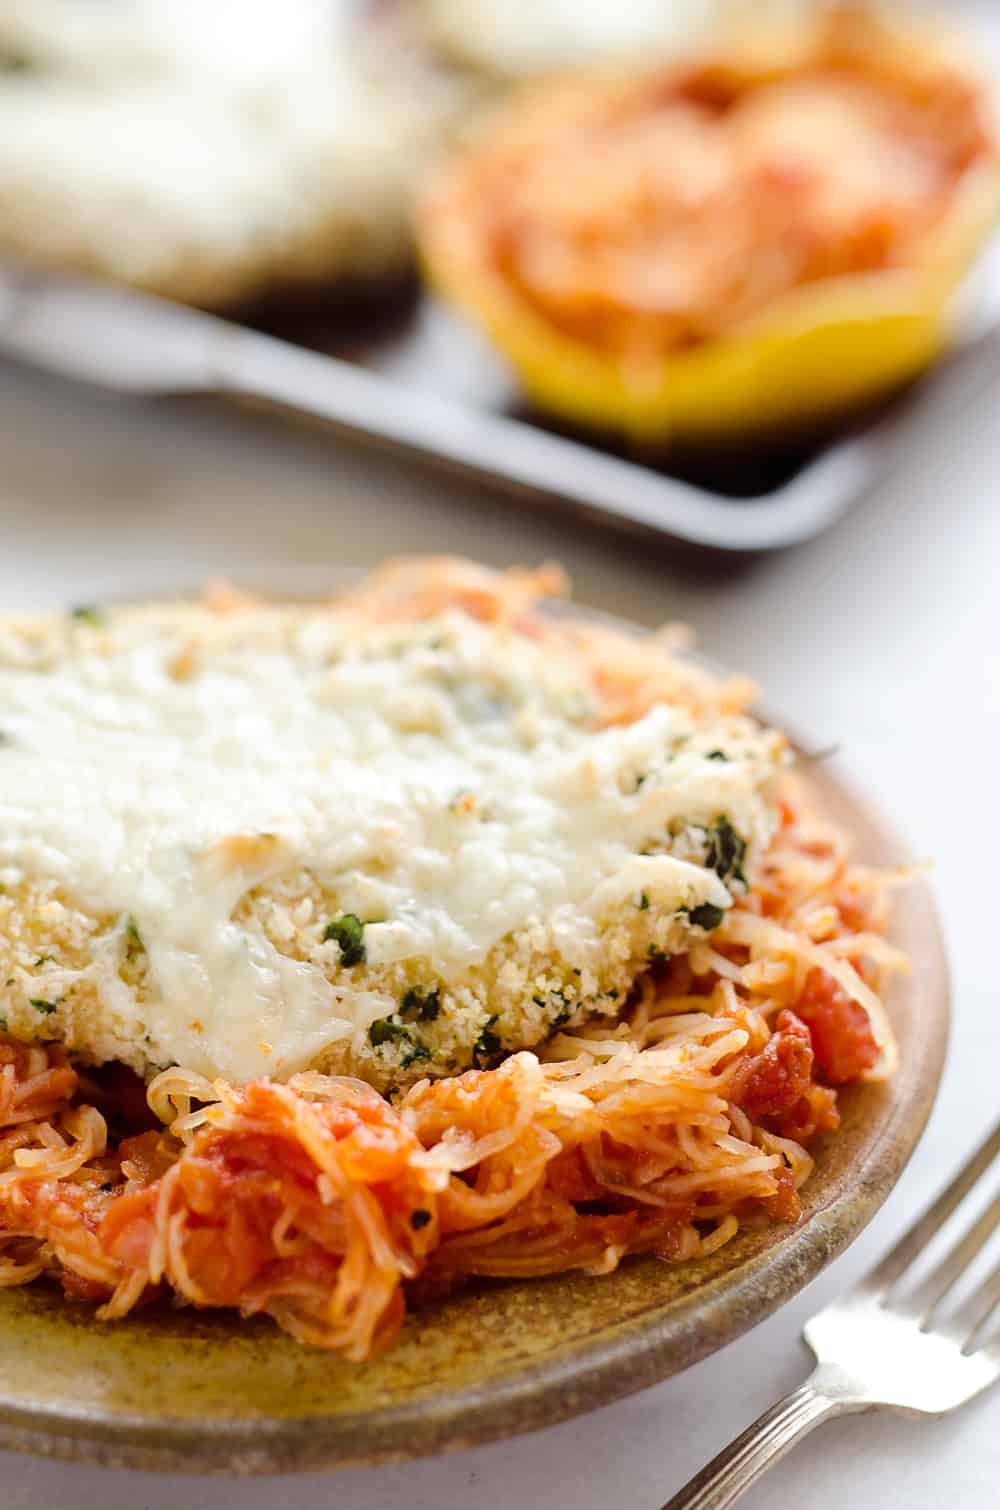 Skinny Spaghetti Squash Chicken Parmesan is a healthy twist on the traditional classic. Lightly breaded chicken breasts are baked and served with low-carb spaghetti squash and marinara sauce for a comforting dinner your family will ask for again and again!